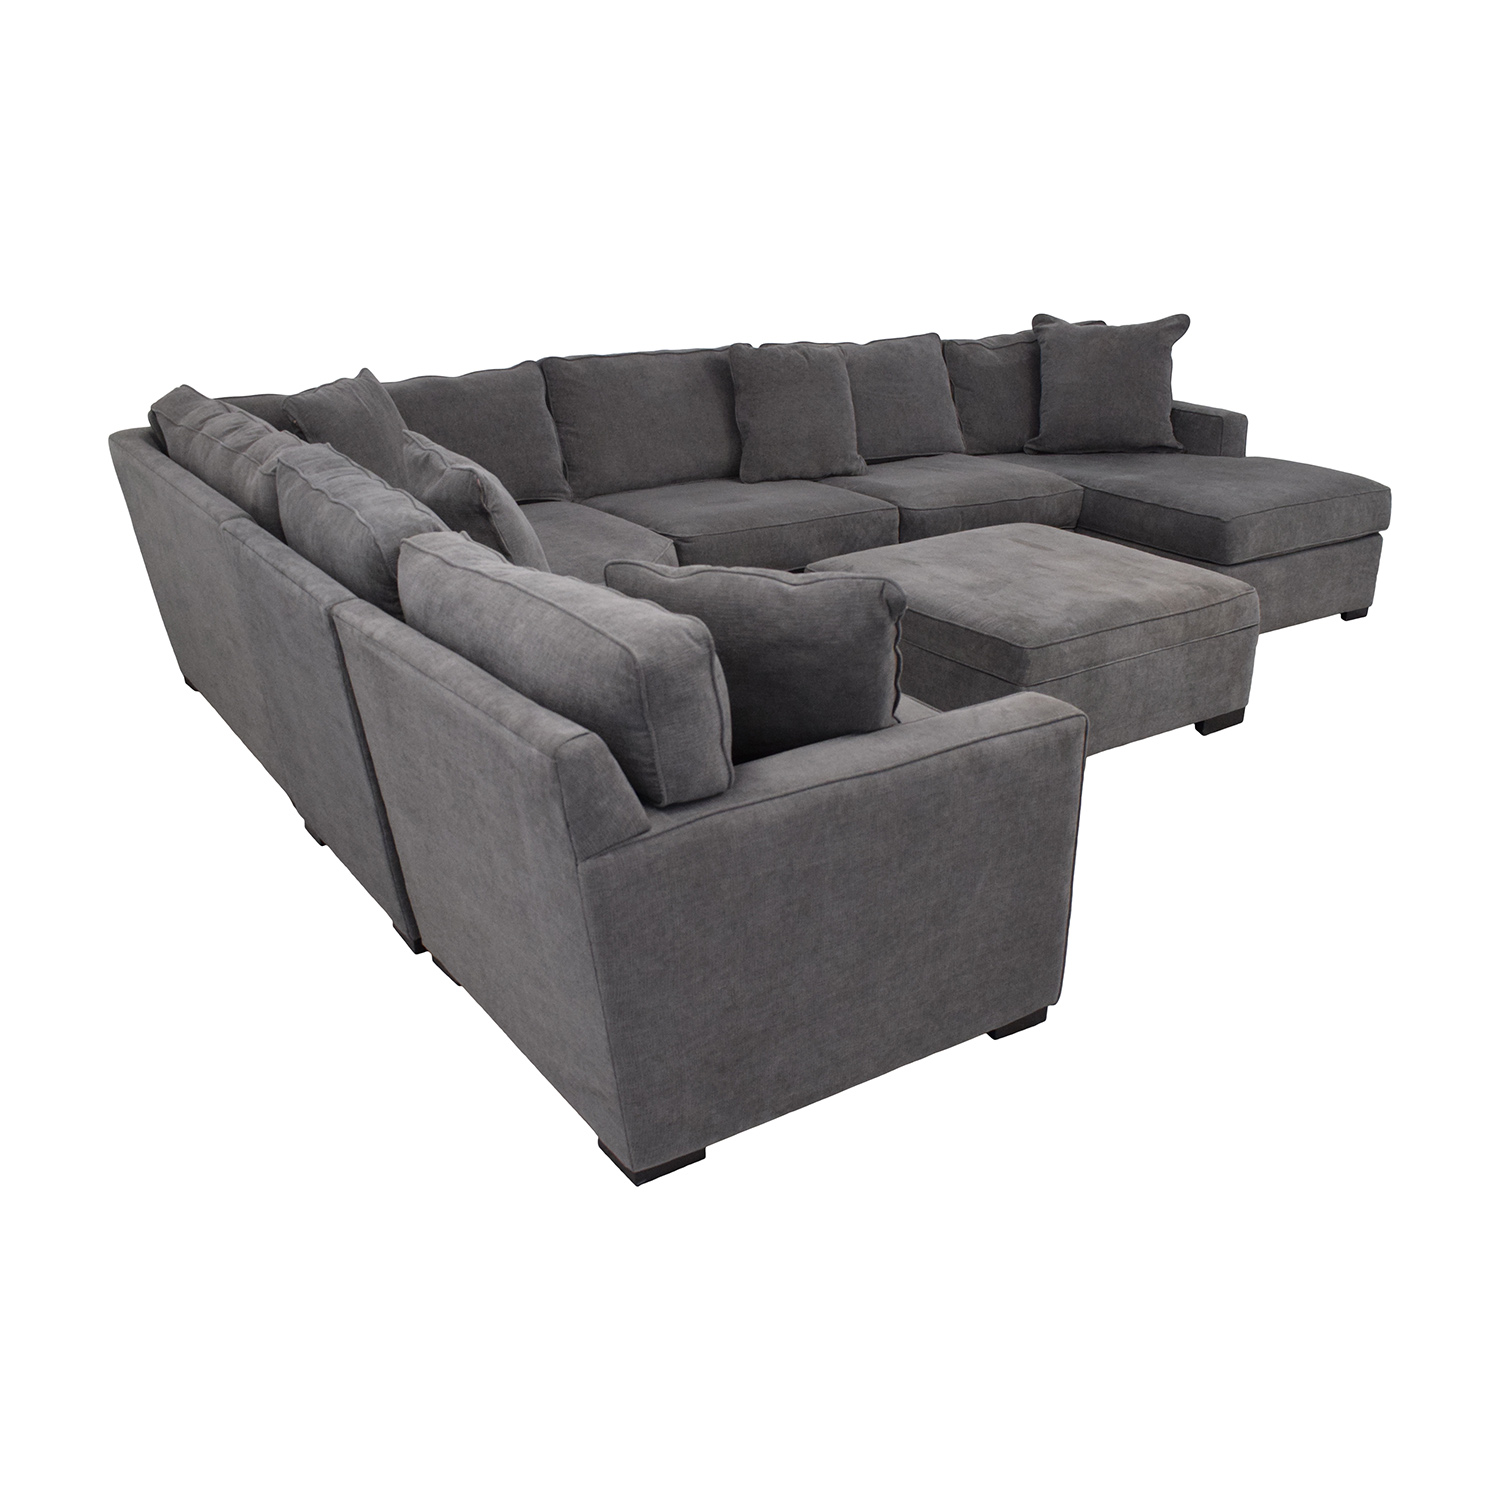 Macy's Macy's Radley Fabric 6-Piece Chaise Sectional Sofa with Corner Piece and Ottoman